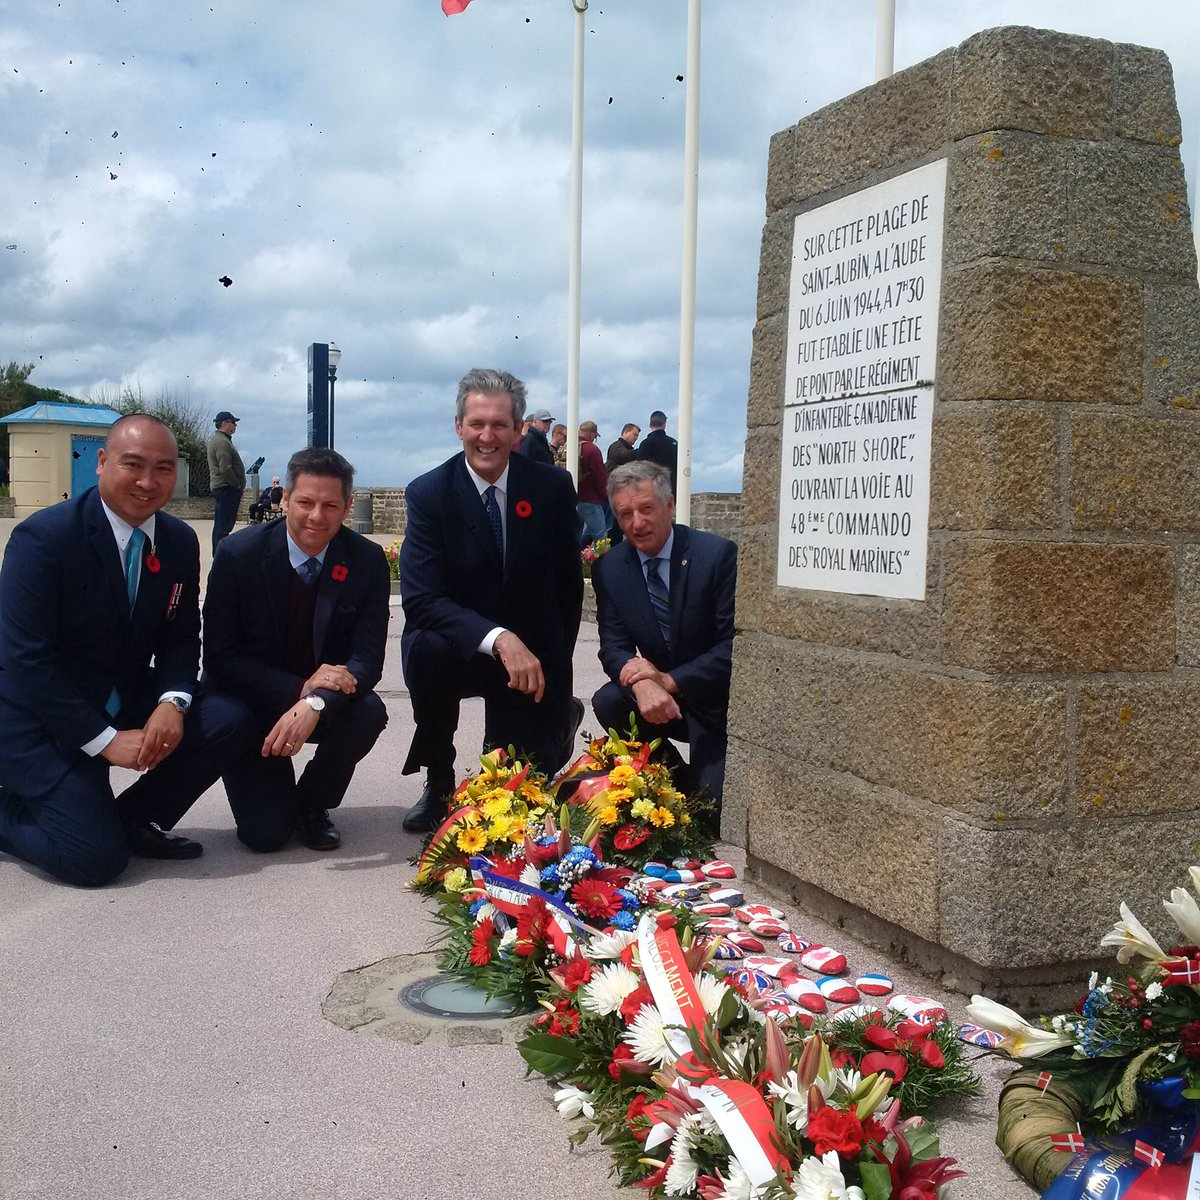 test Twitter Media - Joined by my colleagues @Min_Pedersen and @jonreyes204, and @Mayor_Bowman at a wreath laying for the Fort Garry Horse Commemoration in Saint Aubin-sur-Mer #Juno75 https://t.co/nHM5oEo7w8